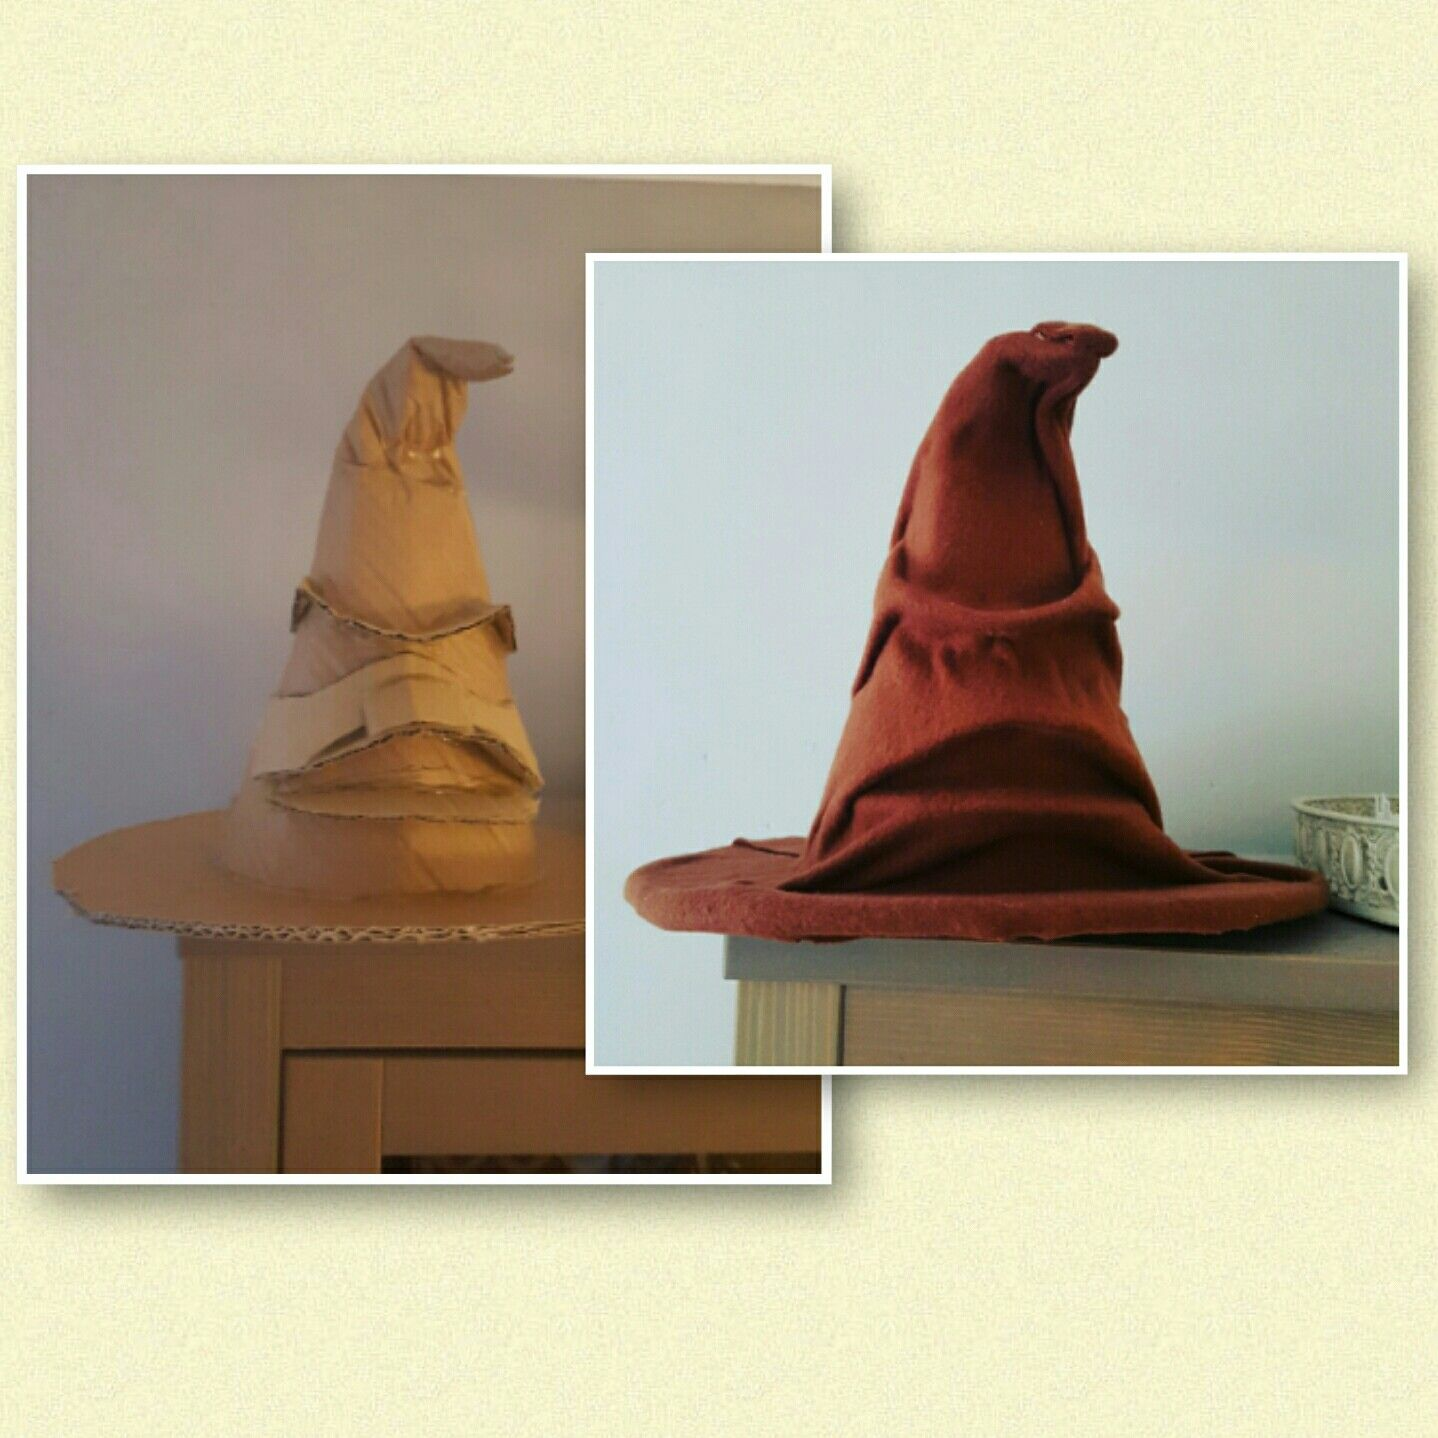 Created Harry Potter's Sorting Hat by recreating a Halloween witch hat from carbon, put it together with hot glue, created the mimics with carbon and hot glue and covered it with old brown fabric that was laying around. I used contact cement for that...